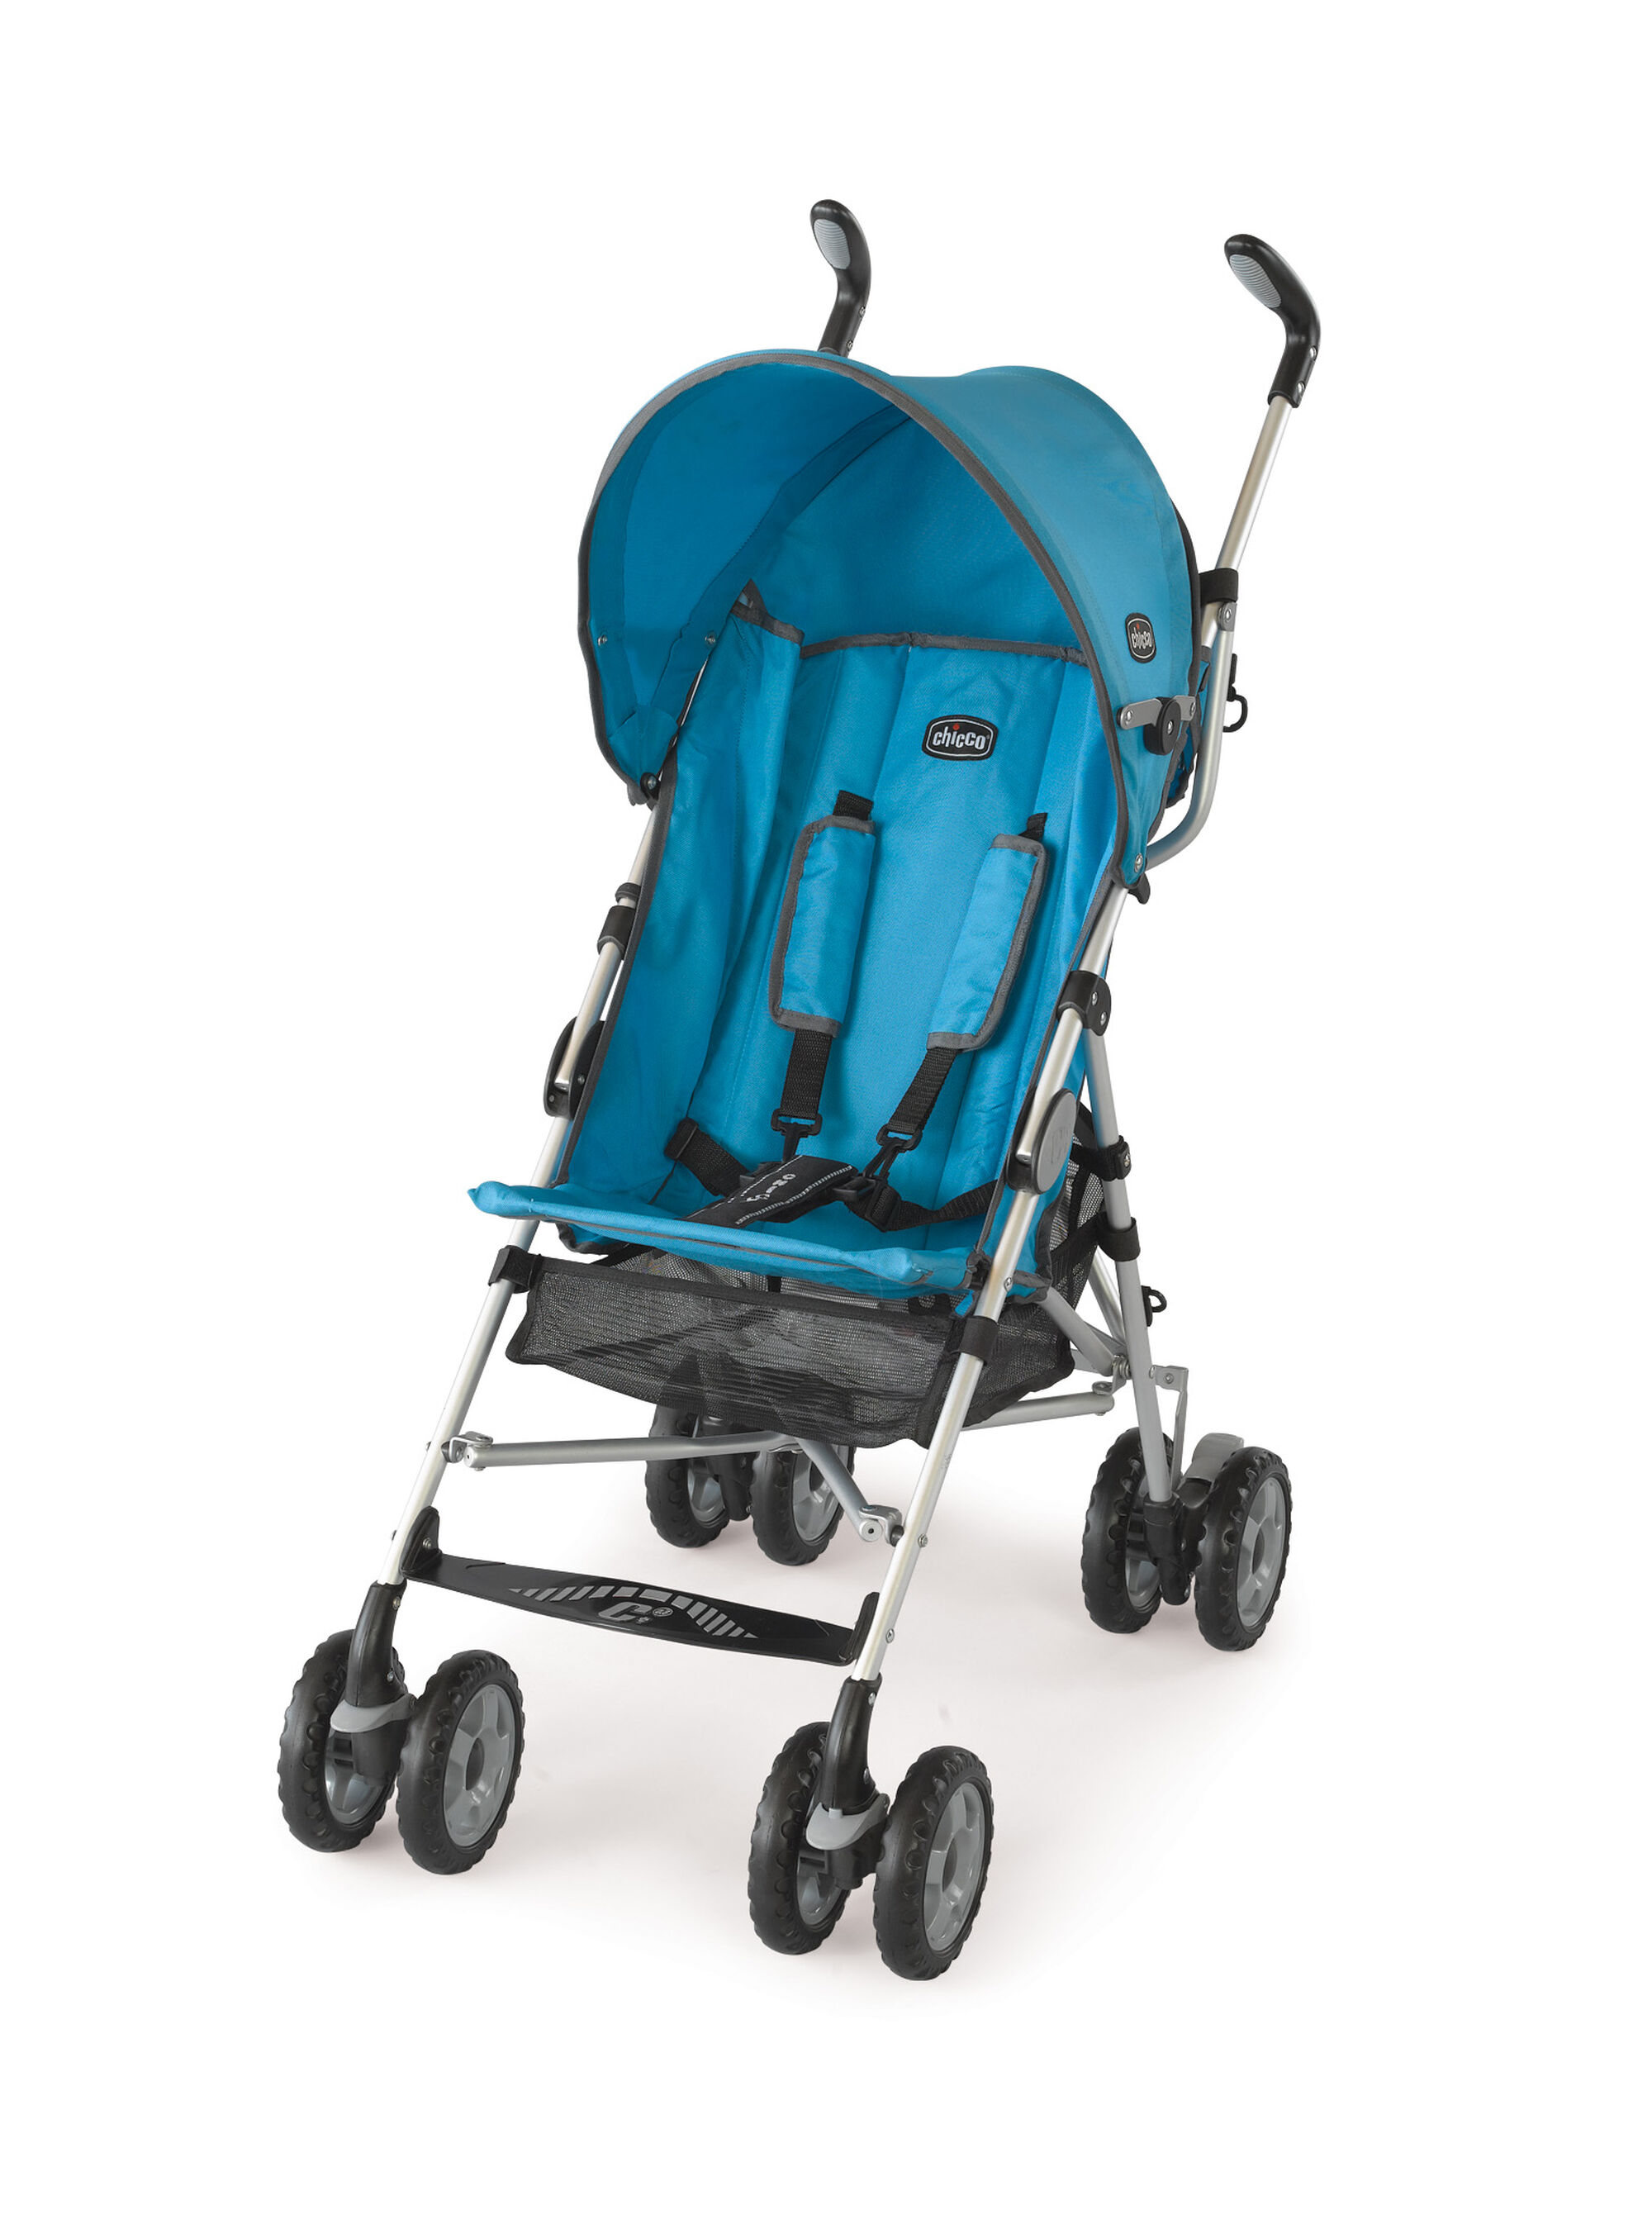 chicco c6 lightweight stroller Chicco Capri Lightweight Stroller in bright blue aqua color Topazio